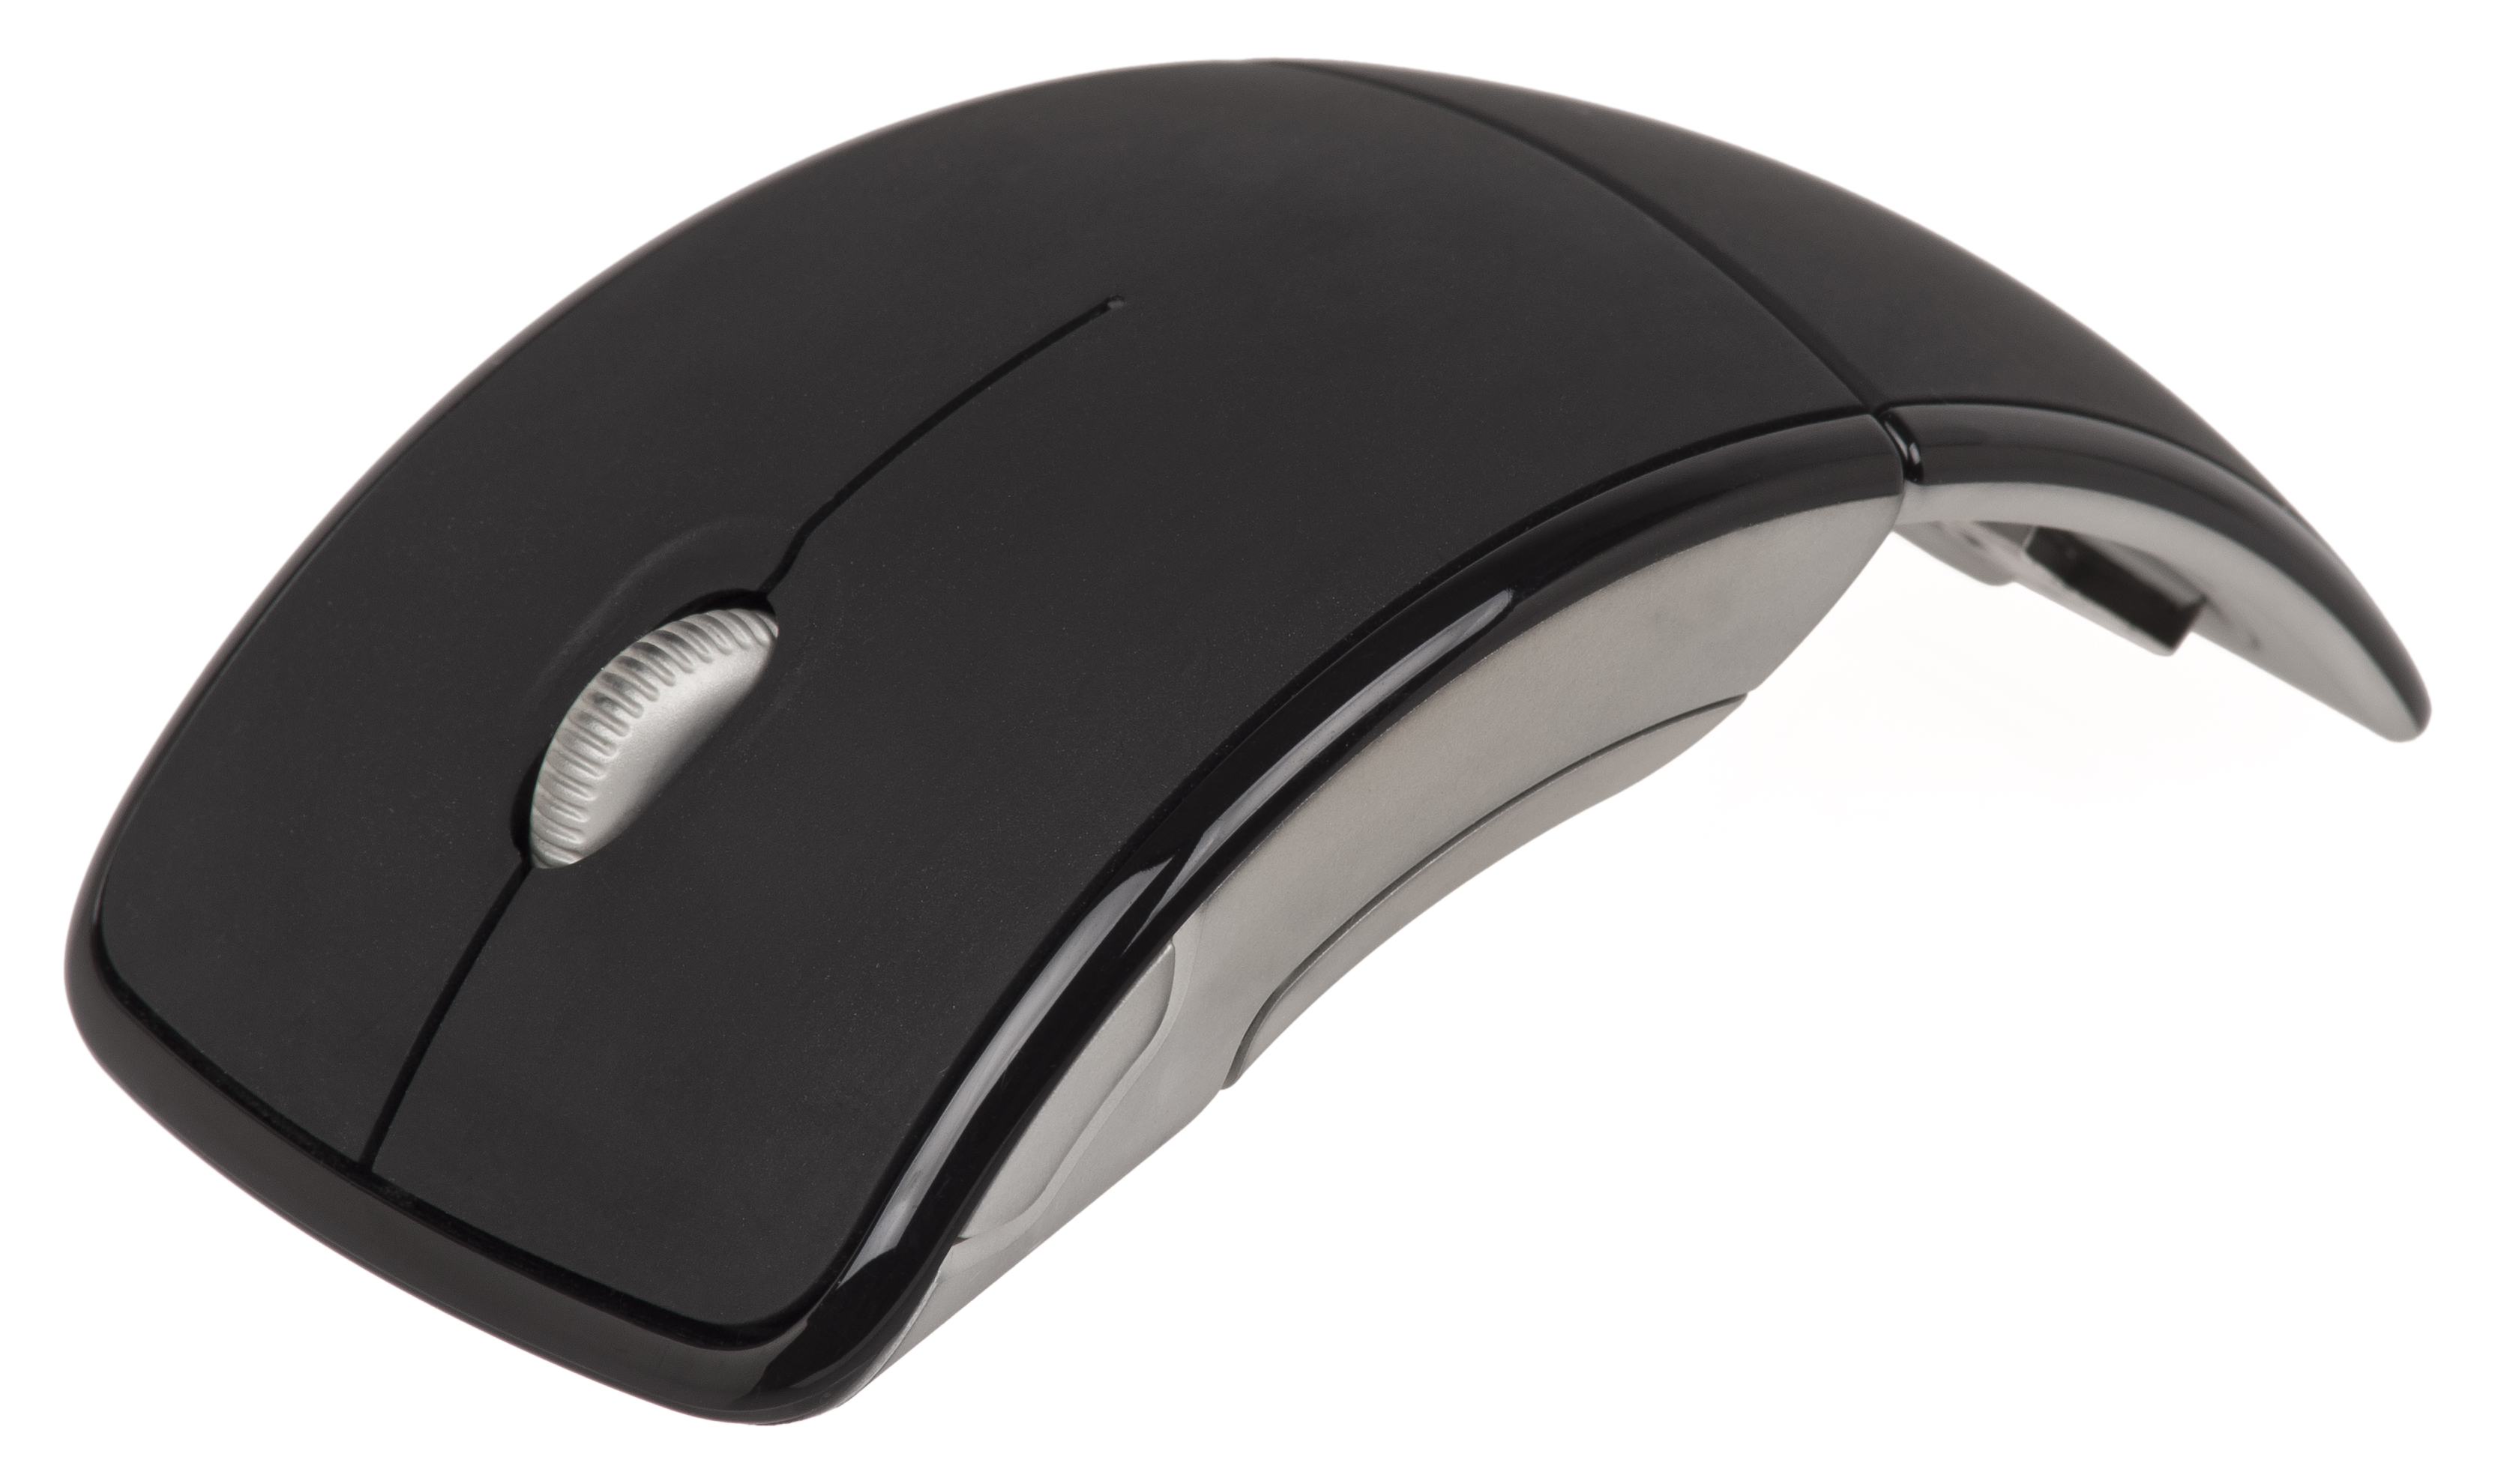 File:MS-Arc-Mouse jpg - Wikimedia Commons